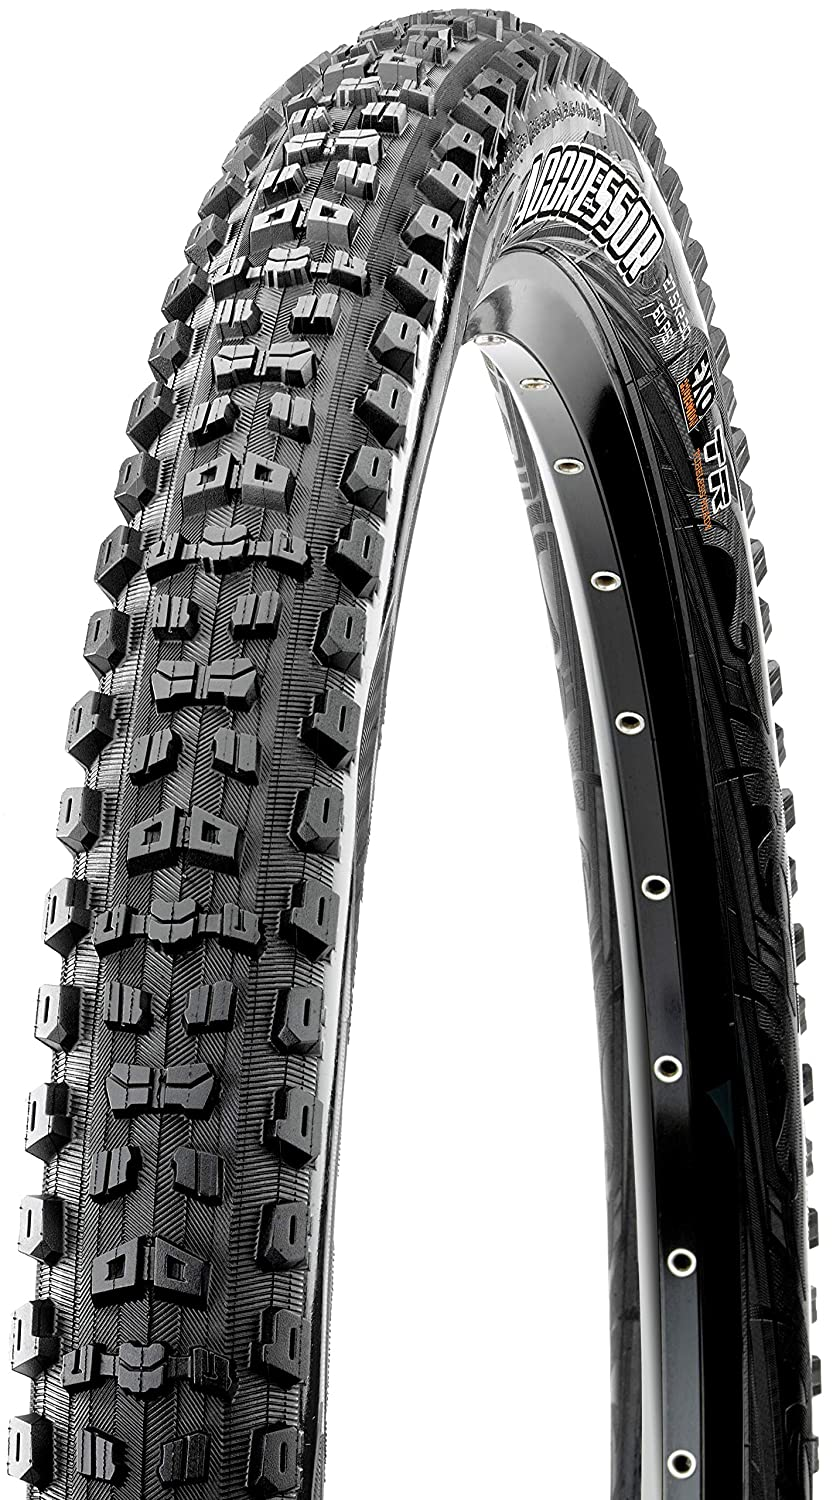 Maxxis Aggressor EXO/TR Mountain Bike Tire